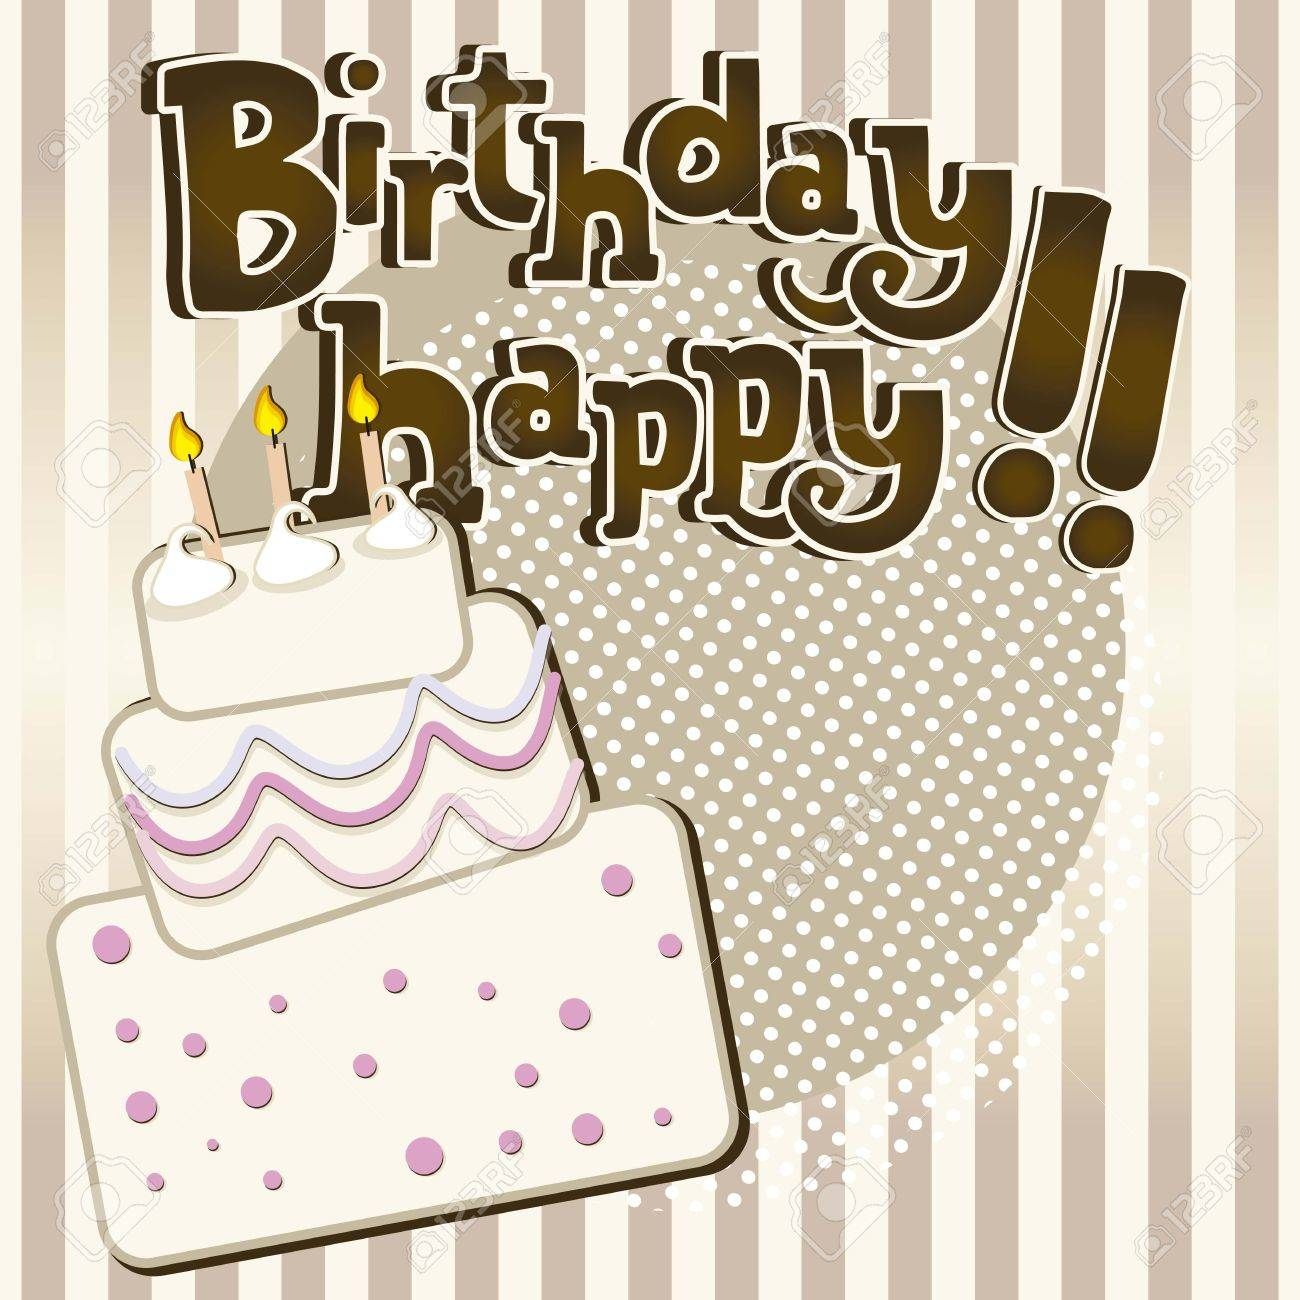 Birthday Cake Vintage With Stripes Royalty Free Cliparts Vectors